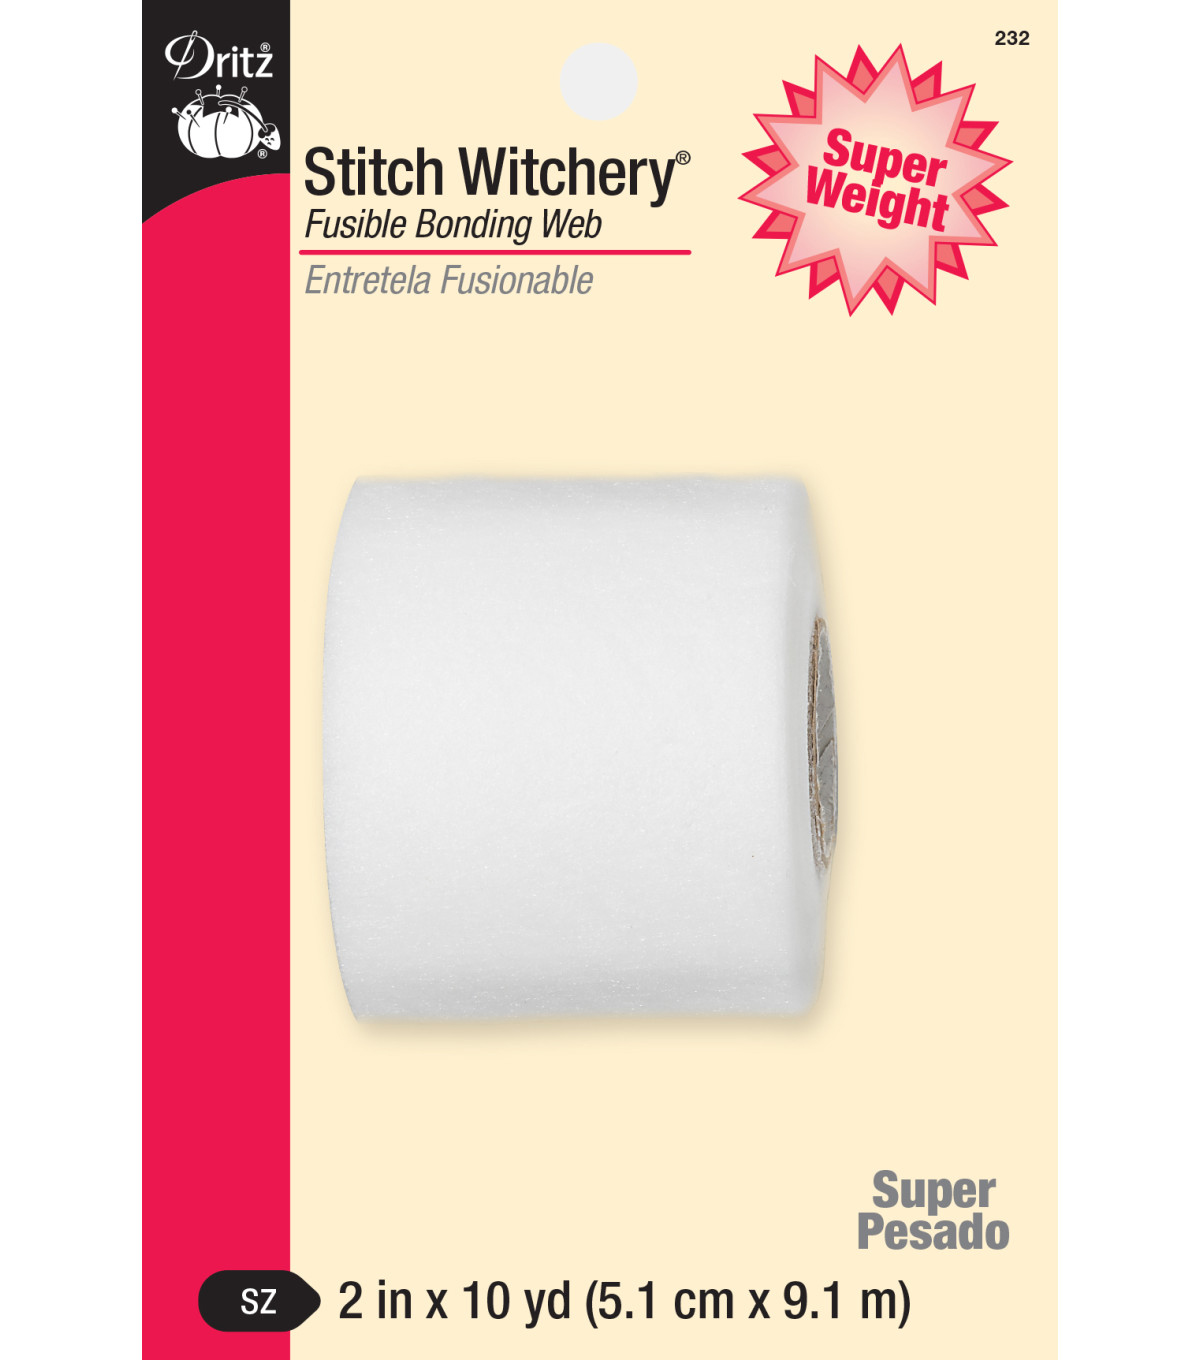 Dritz Stitch Witchery Super Weight Fusible Bonding Web 2\u0022x10yds